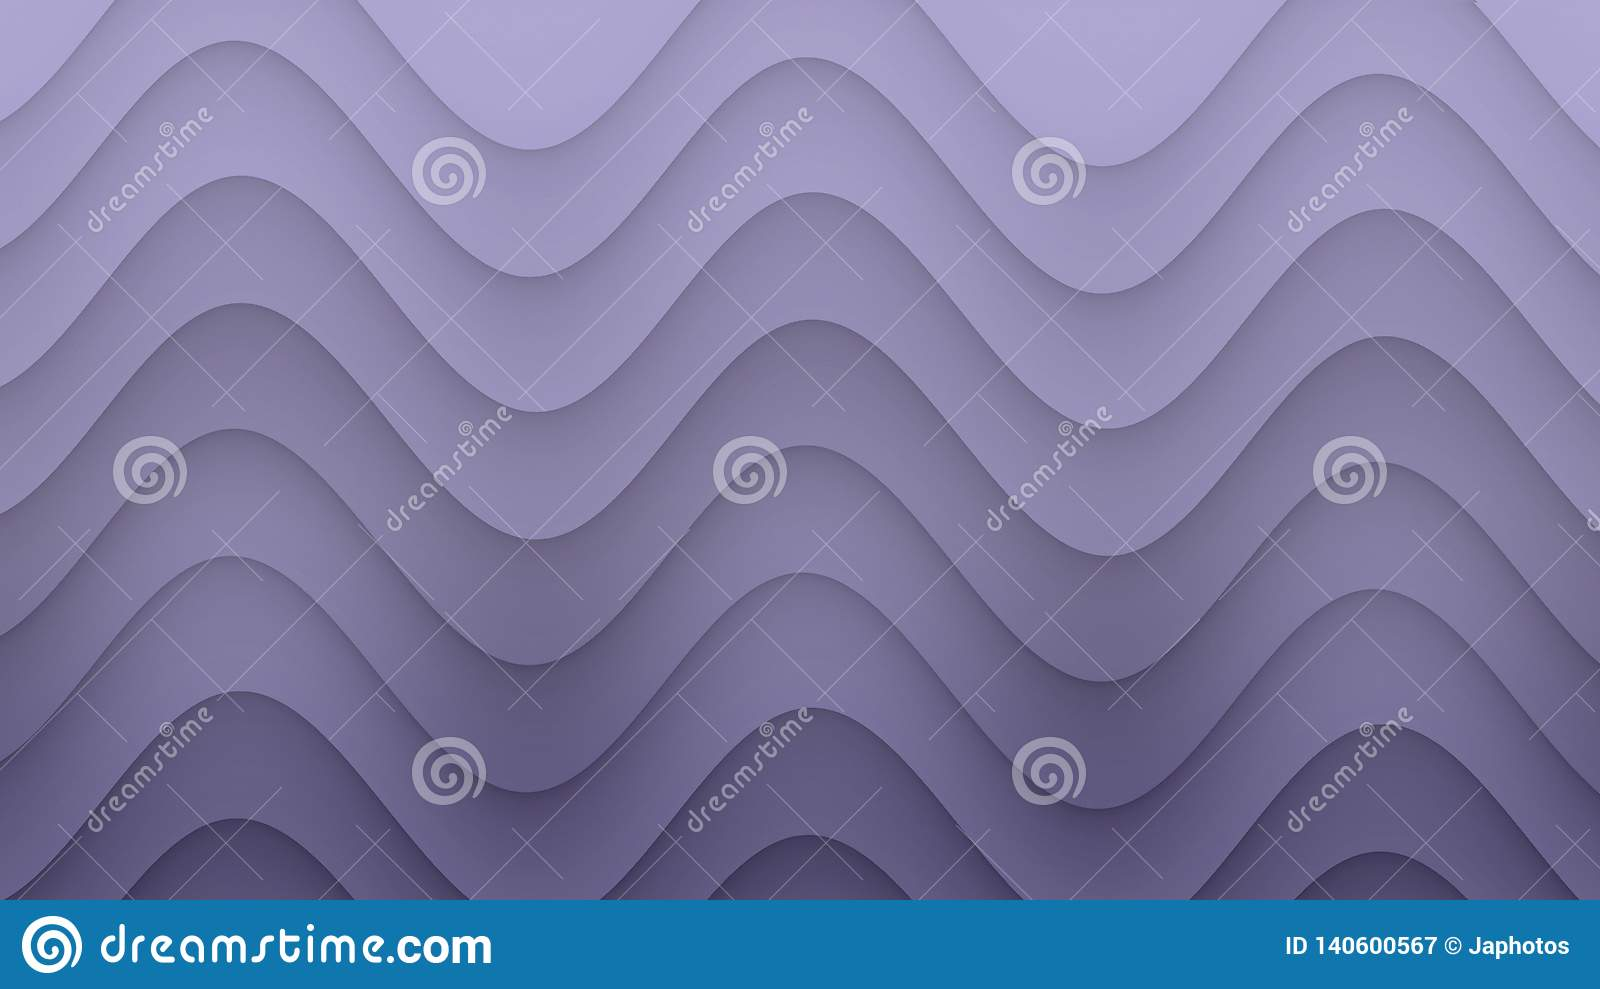 Smooth rolling curves abstract background illustration in gradient shades of lilac purple